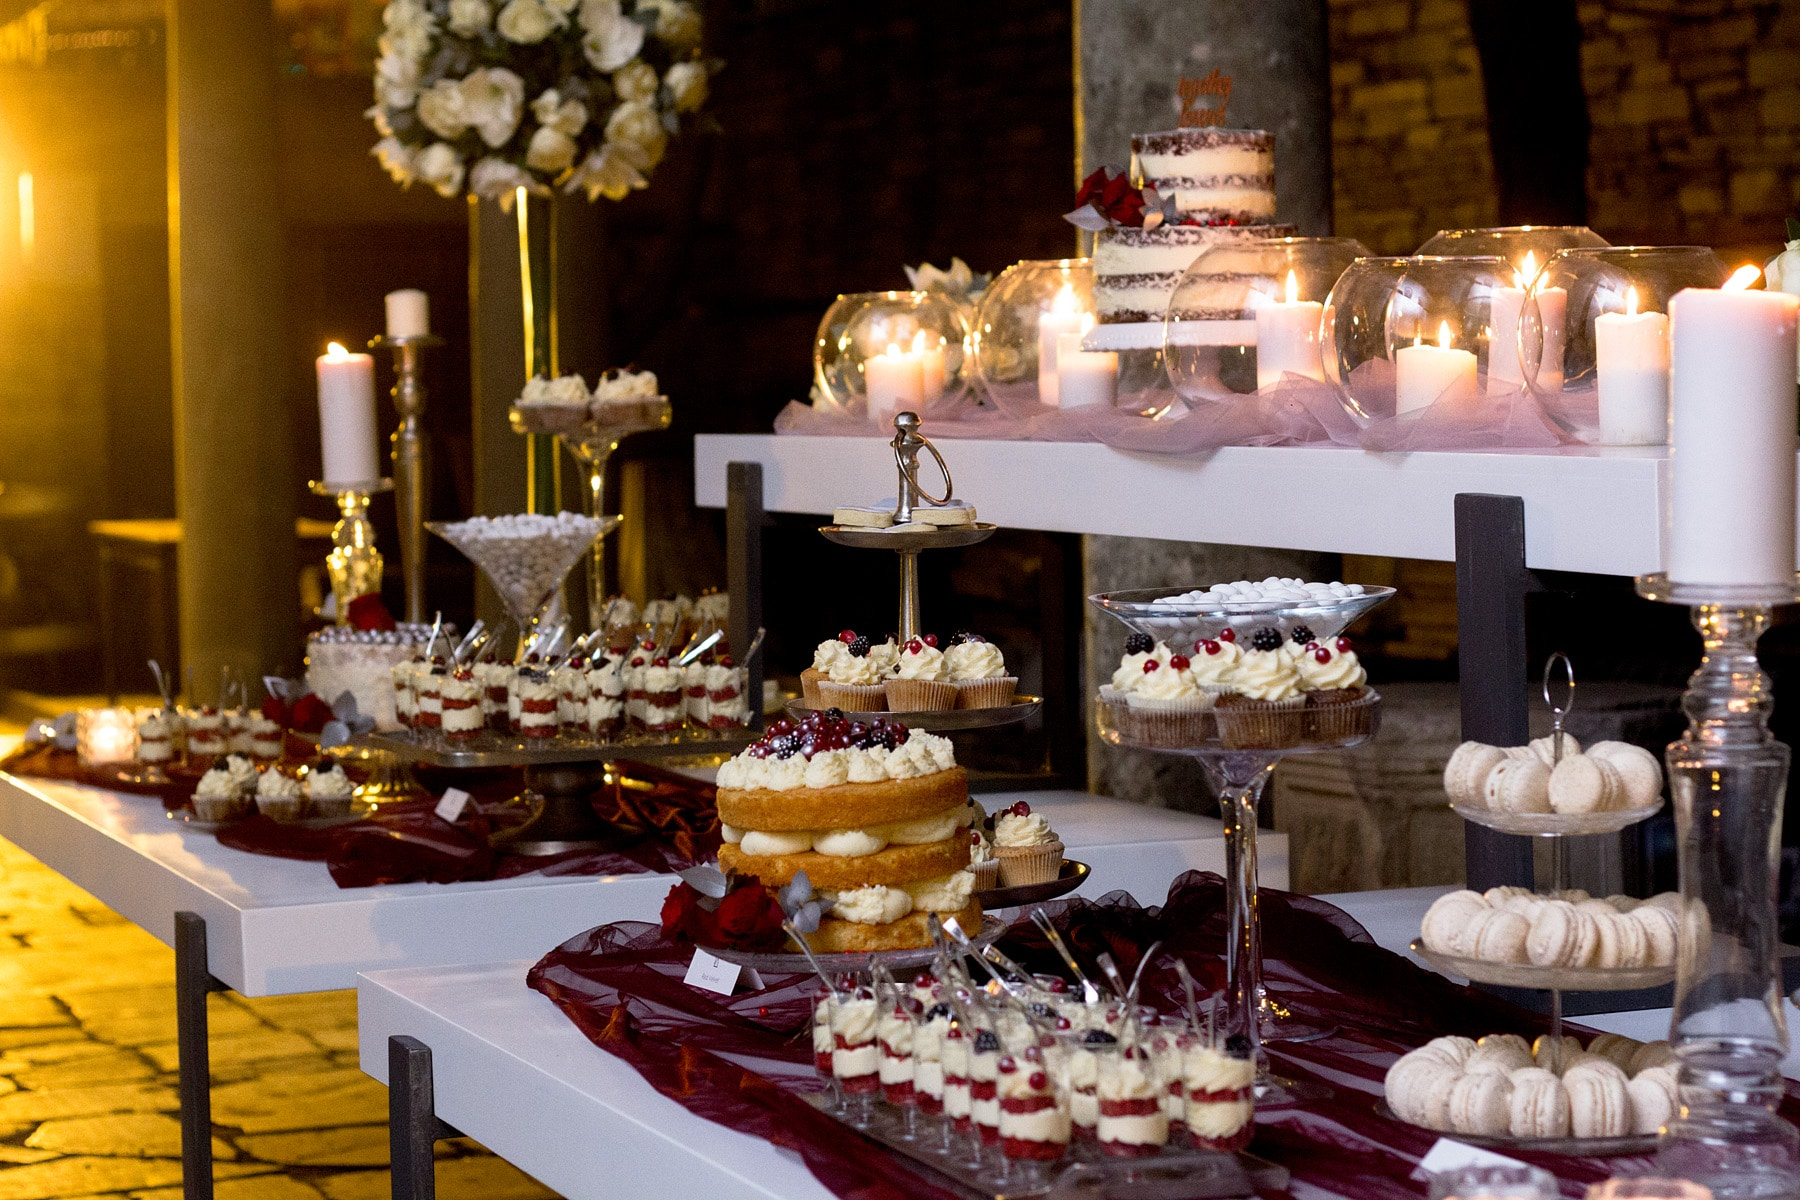 Winter wedding wish table